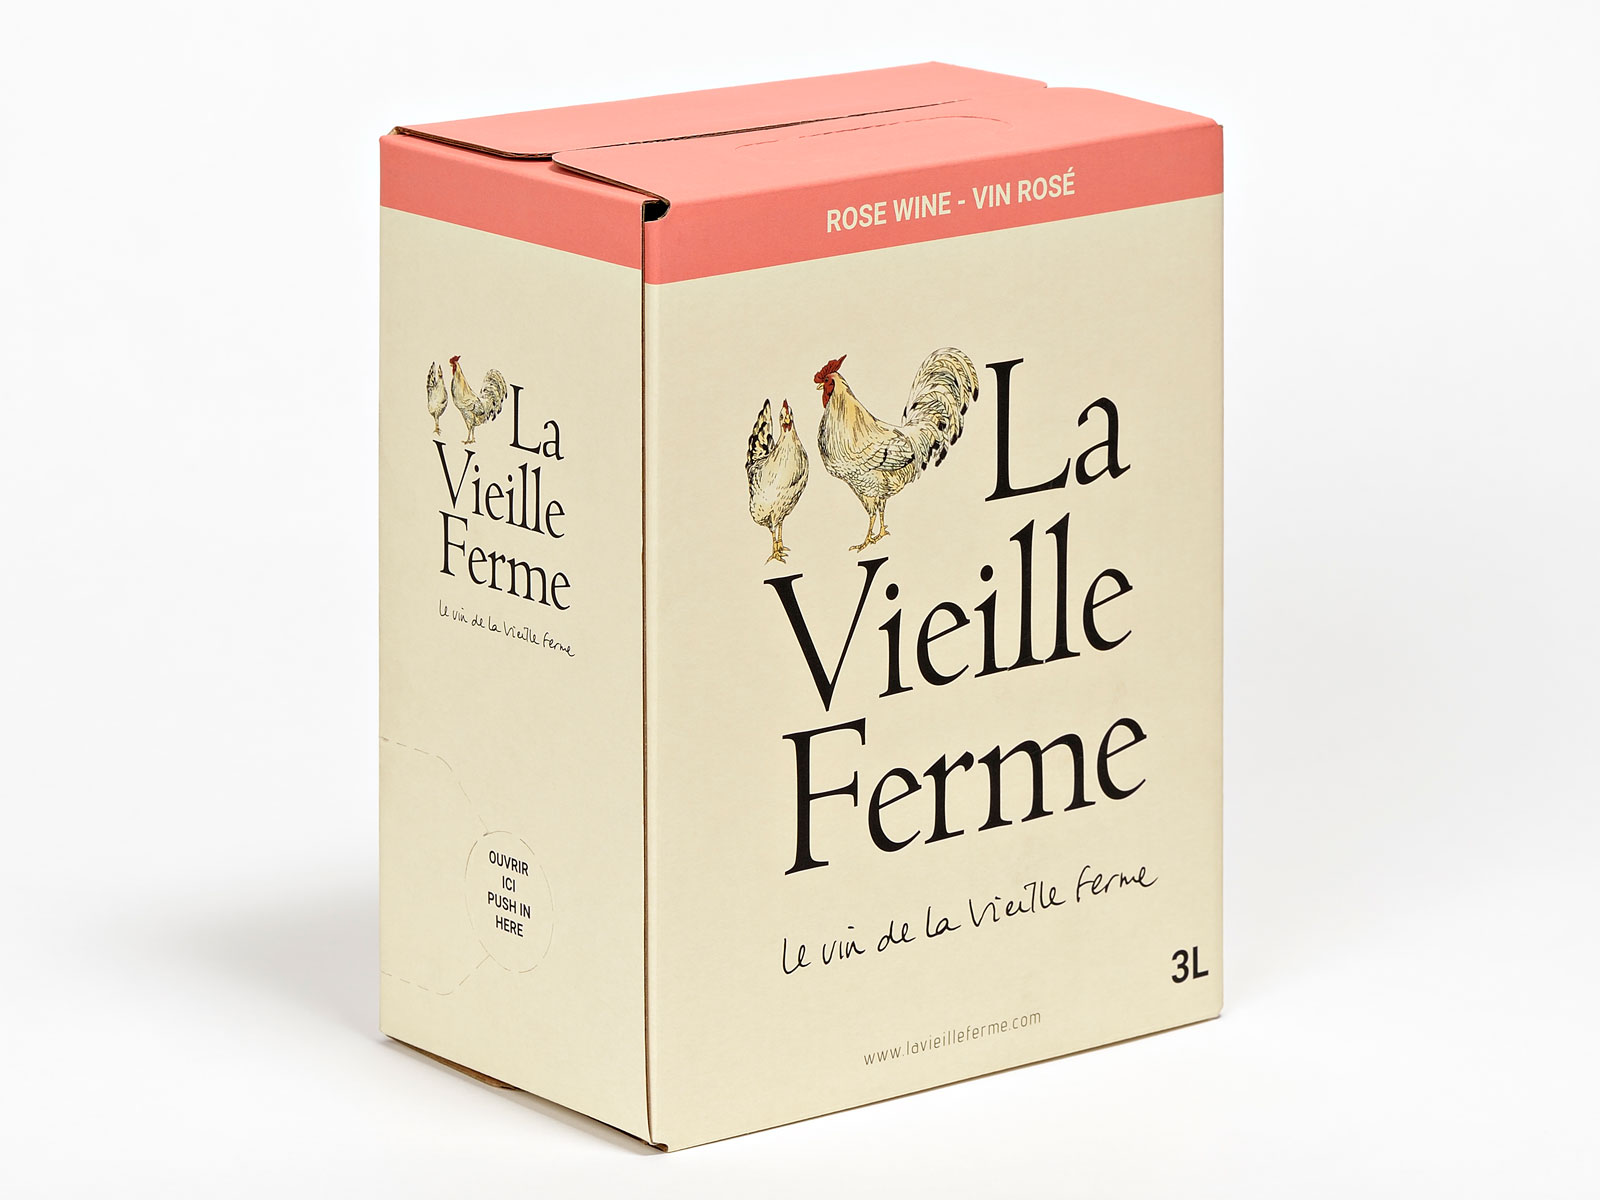 La Vieille Ferme Rose Wine